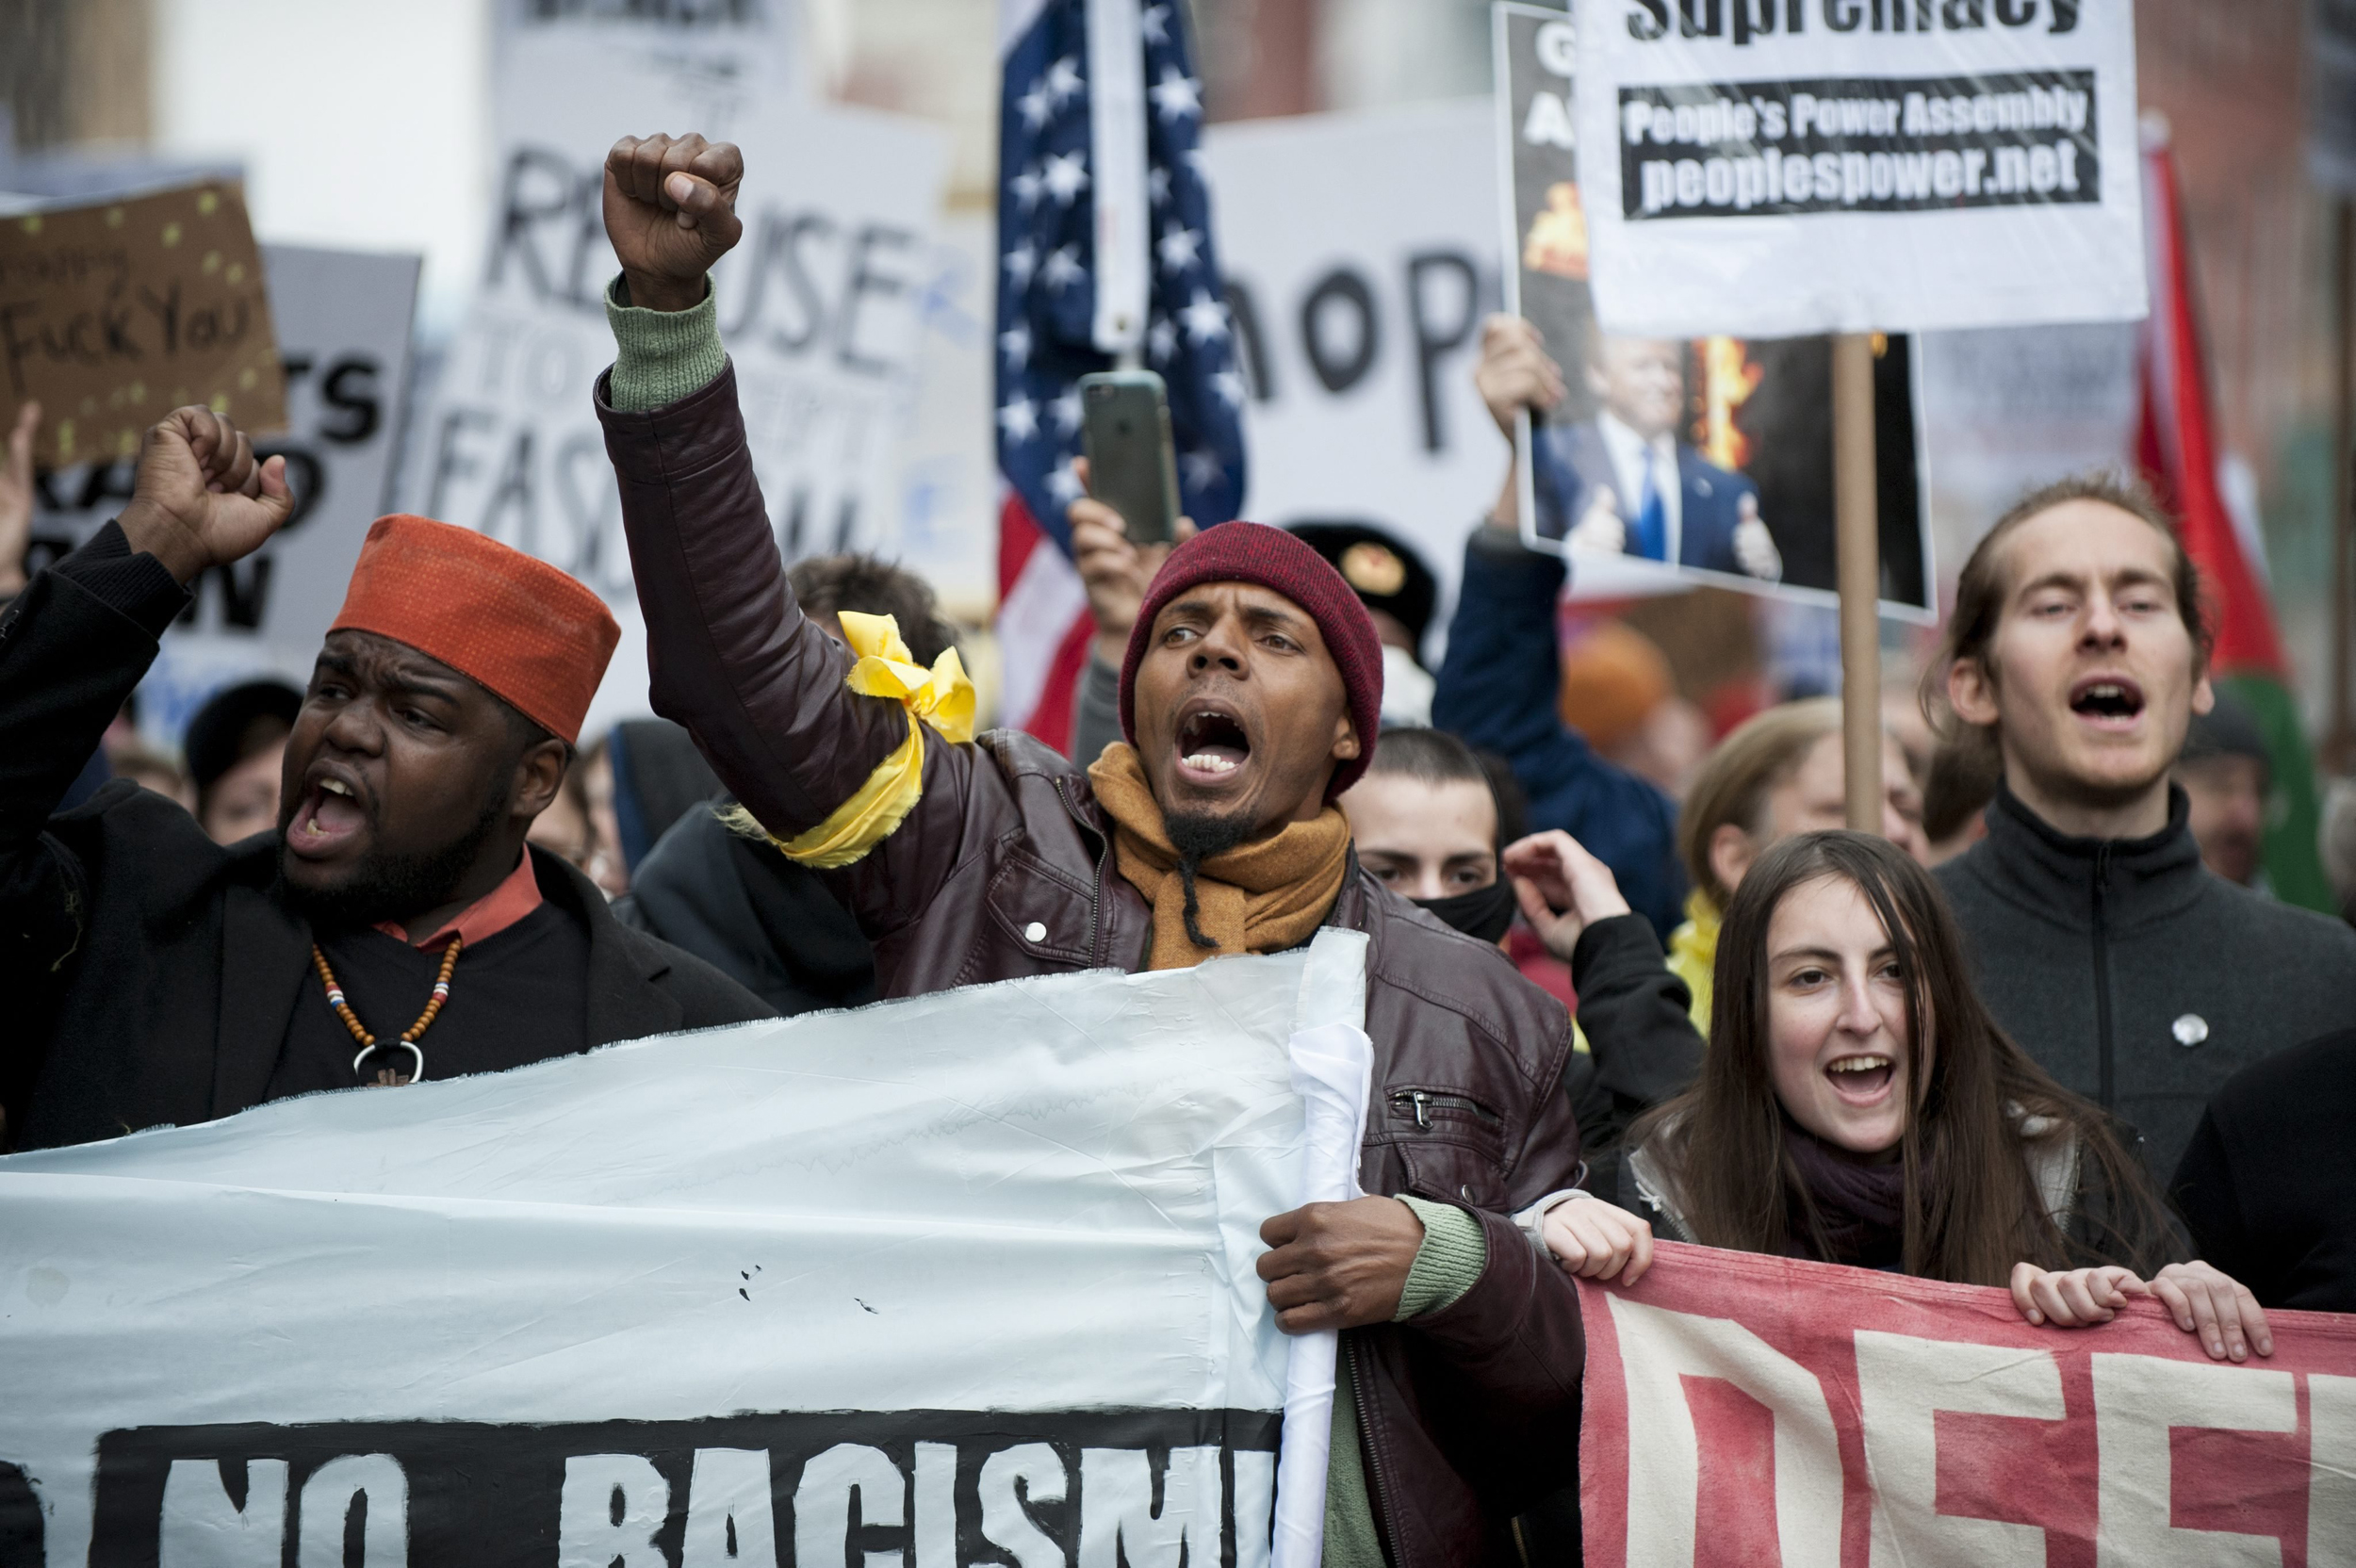 D.C. Faces More Anti-Trump Protests After Day Of Rage